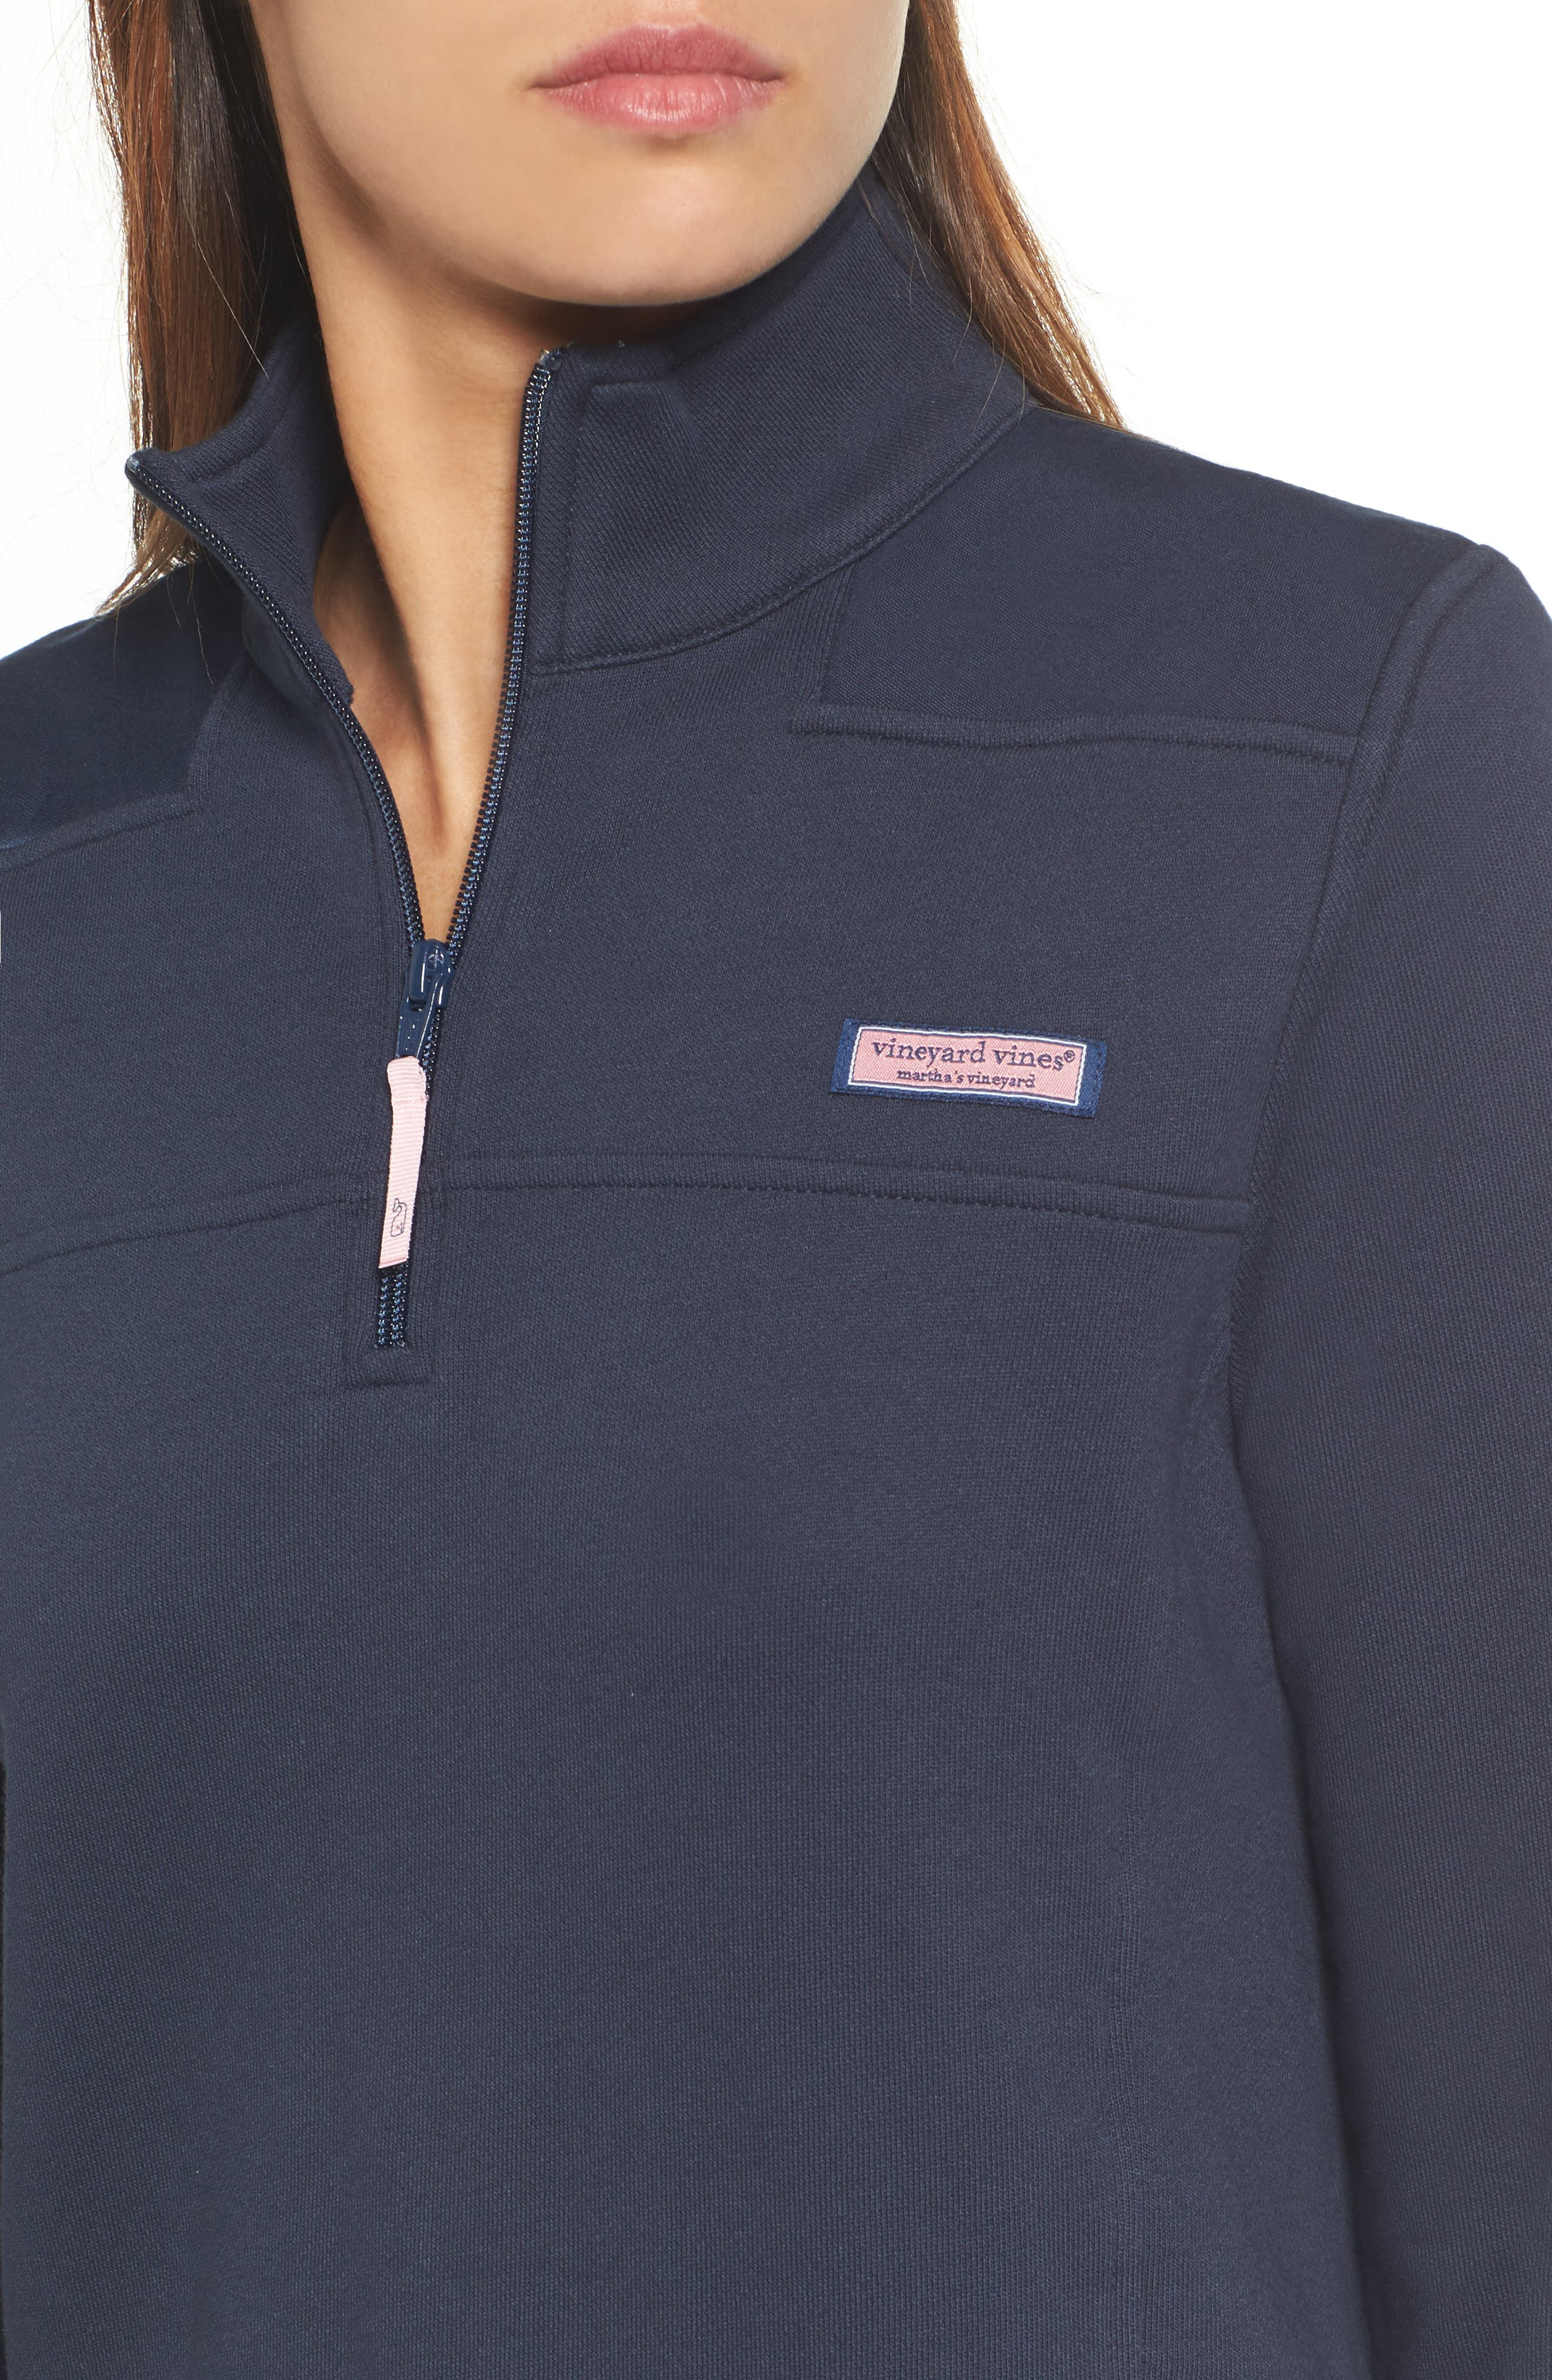 VINEYARD VINES,                             Shep Half Zip French Terry Pullover,                             Alternate thumbnail 4, color,                             400